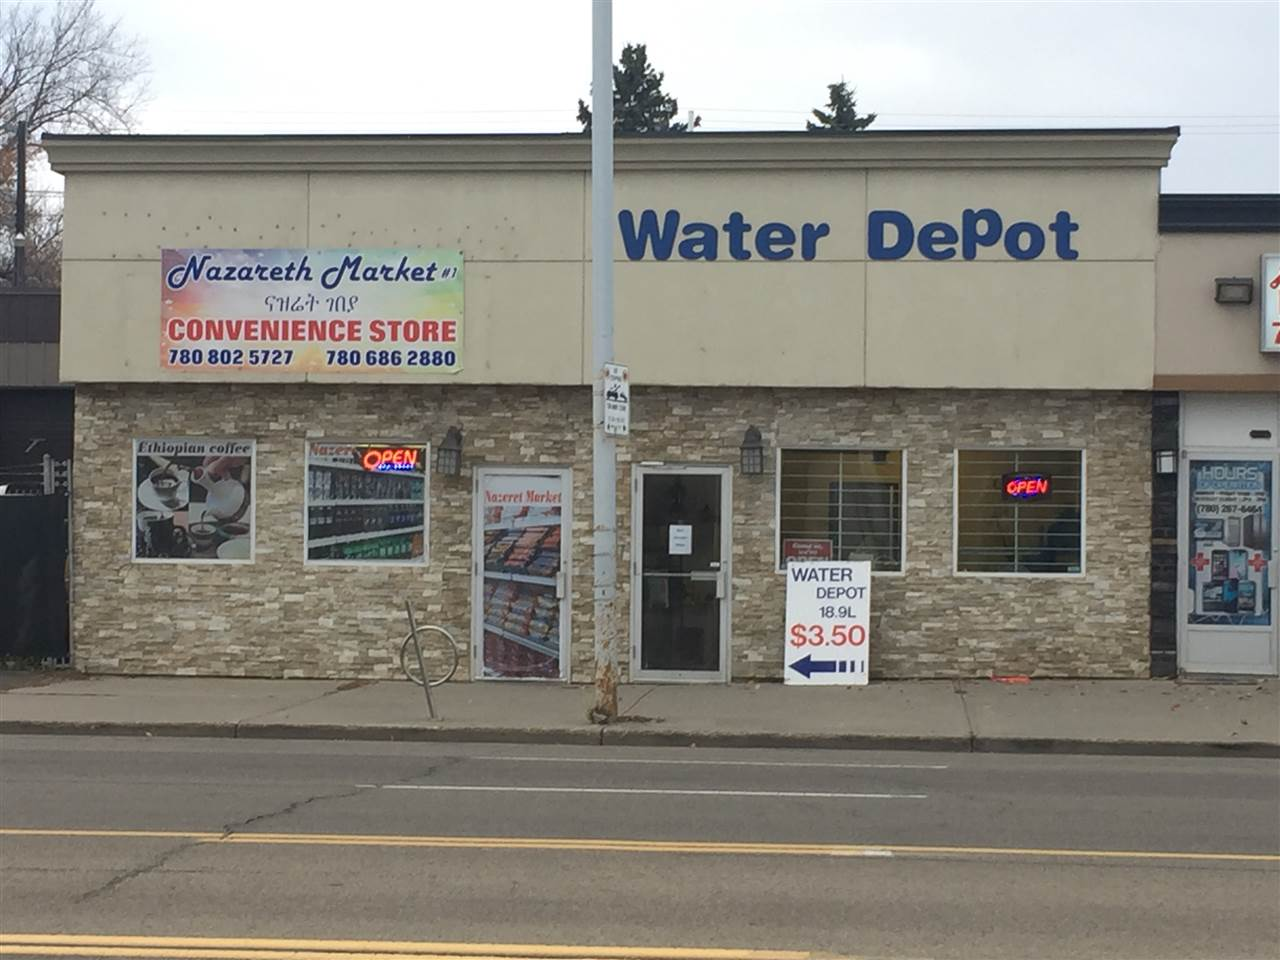 Retail Property for Sale, MLS® # E4159028